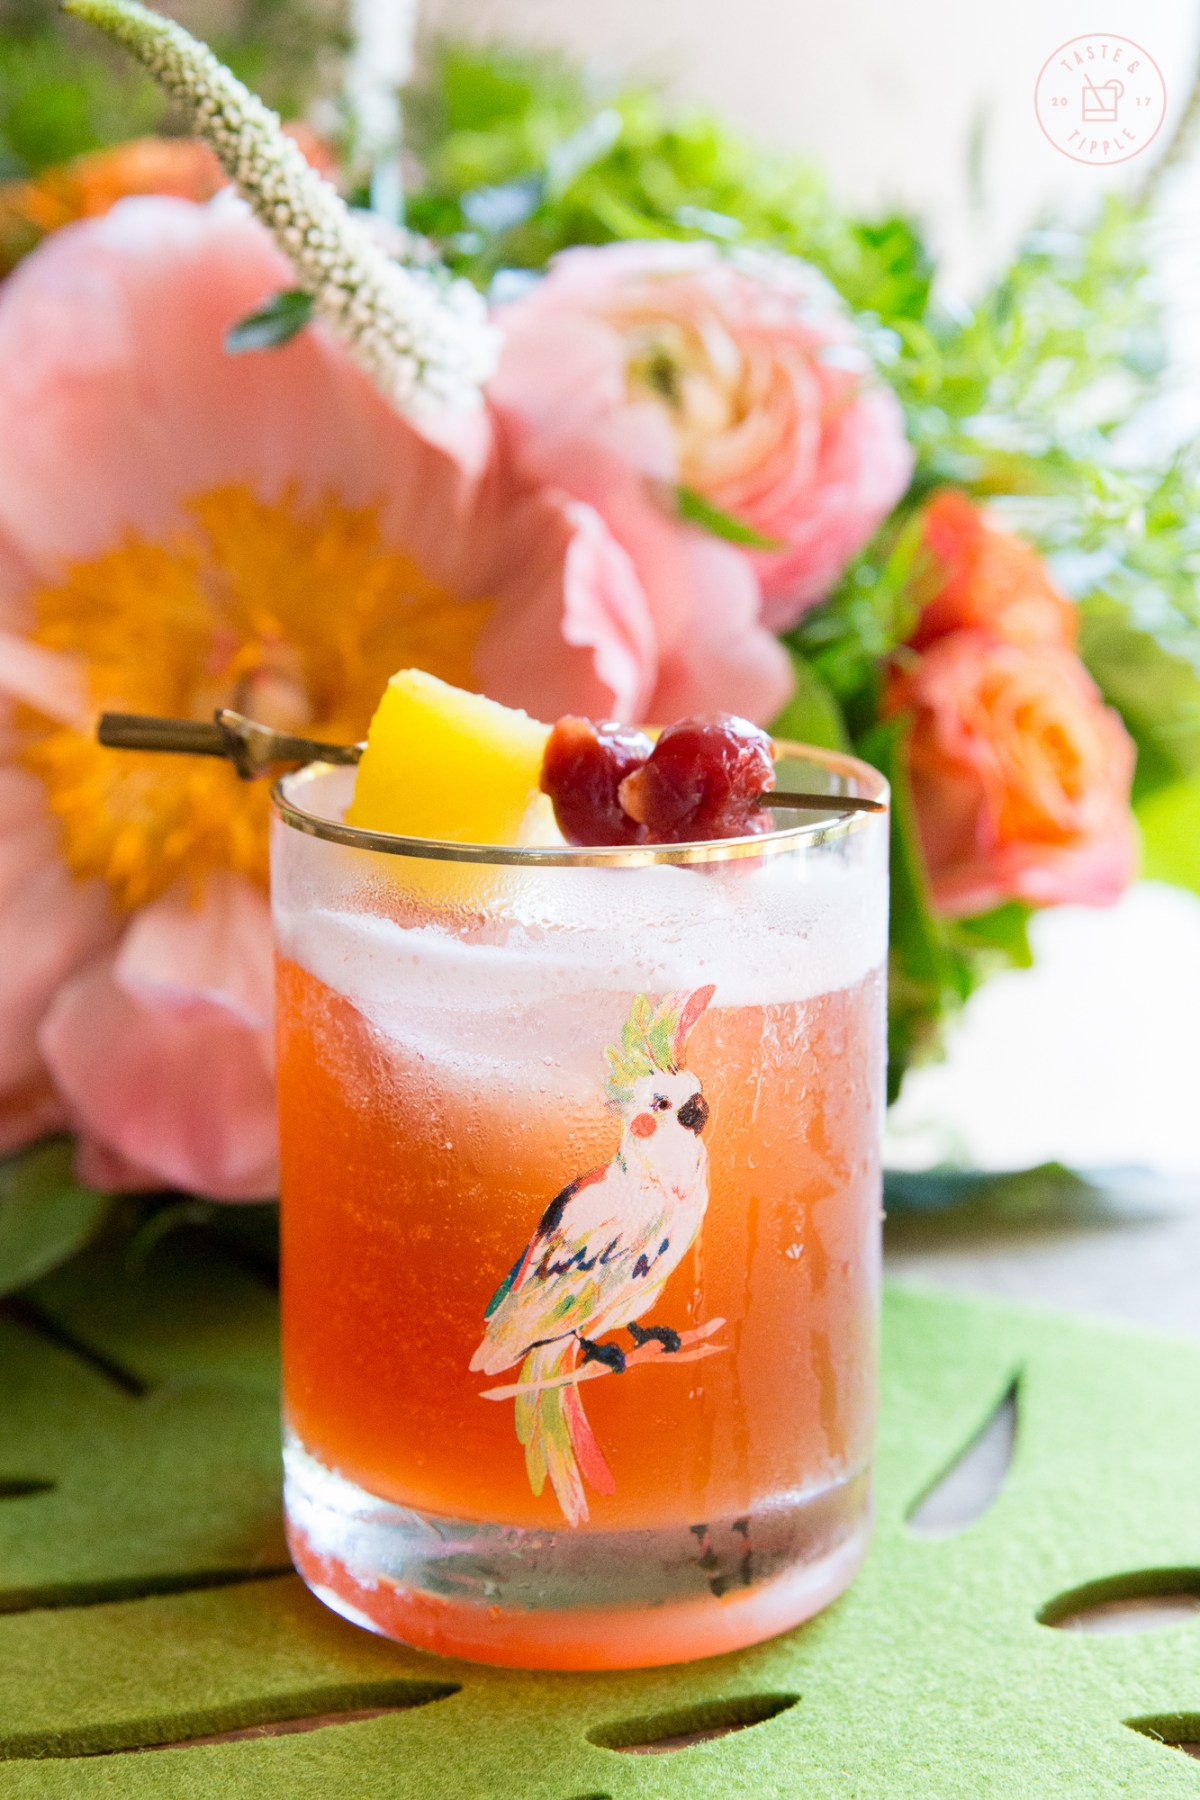 Jungle Bird | Taste and Tipple